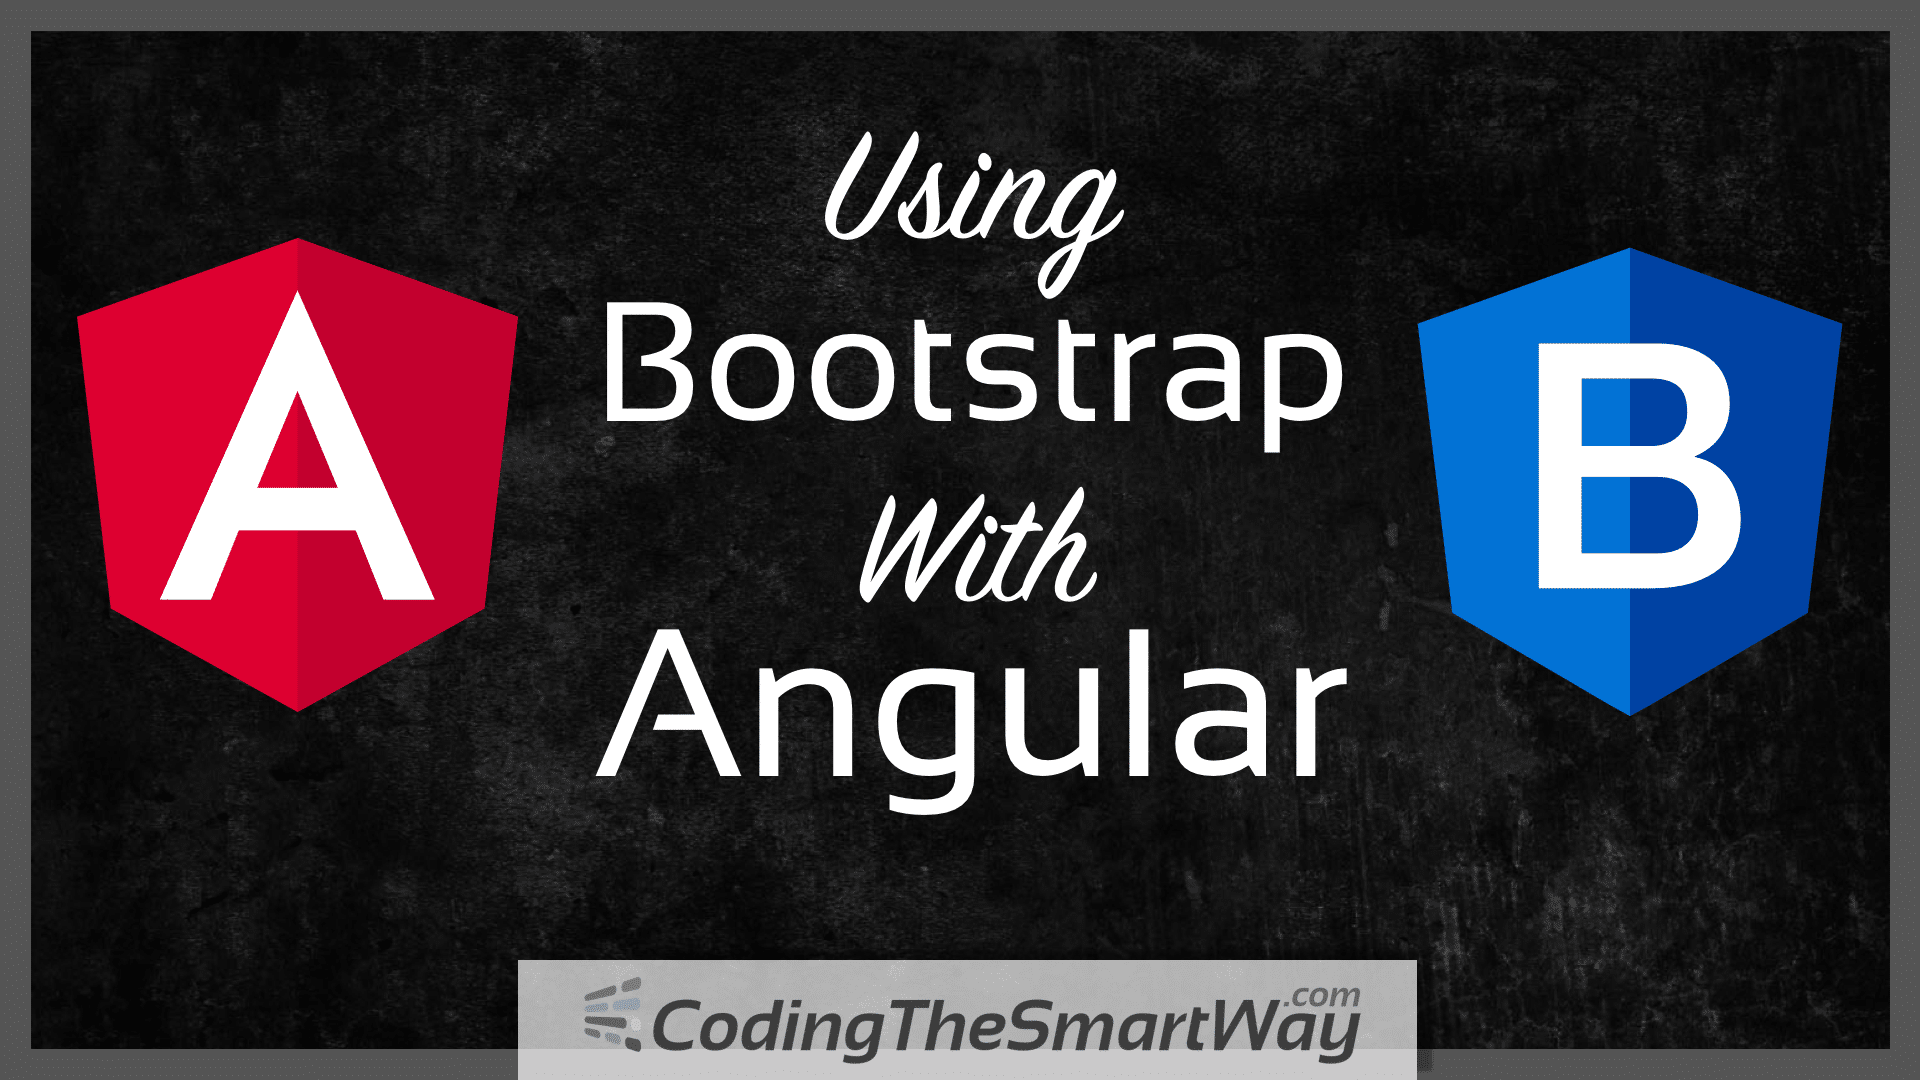 Using Bootstrap with Angular